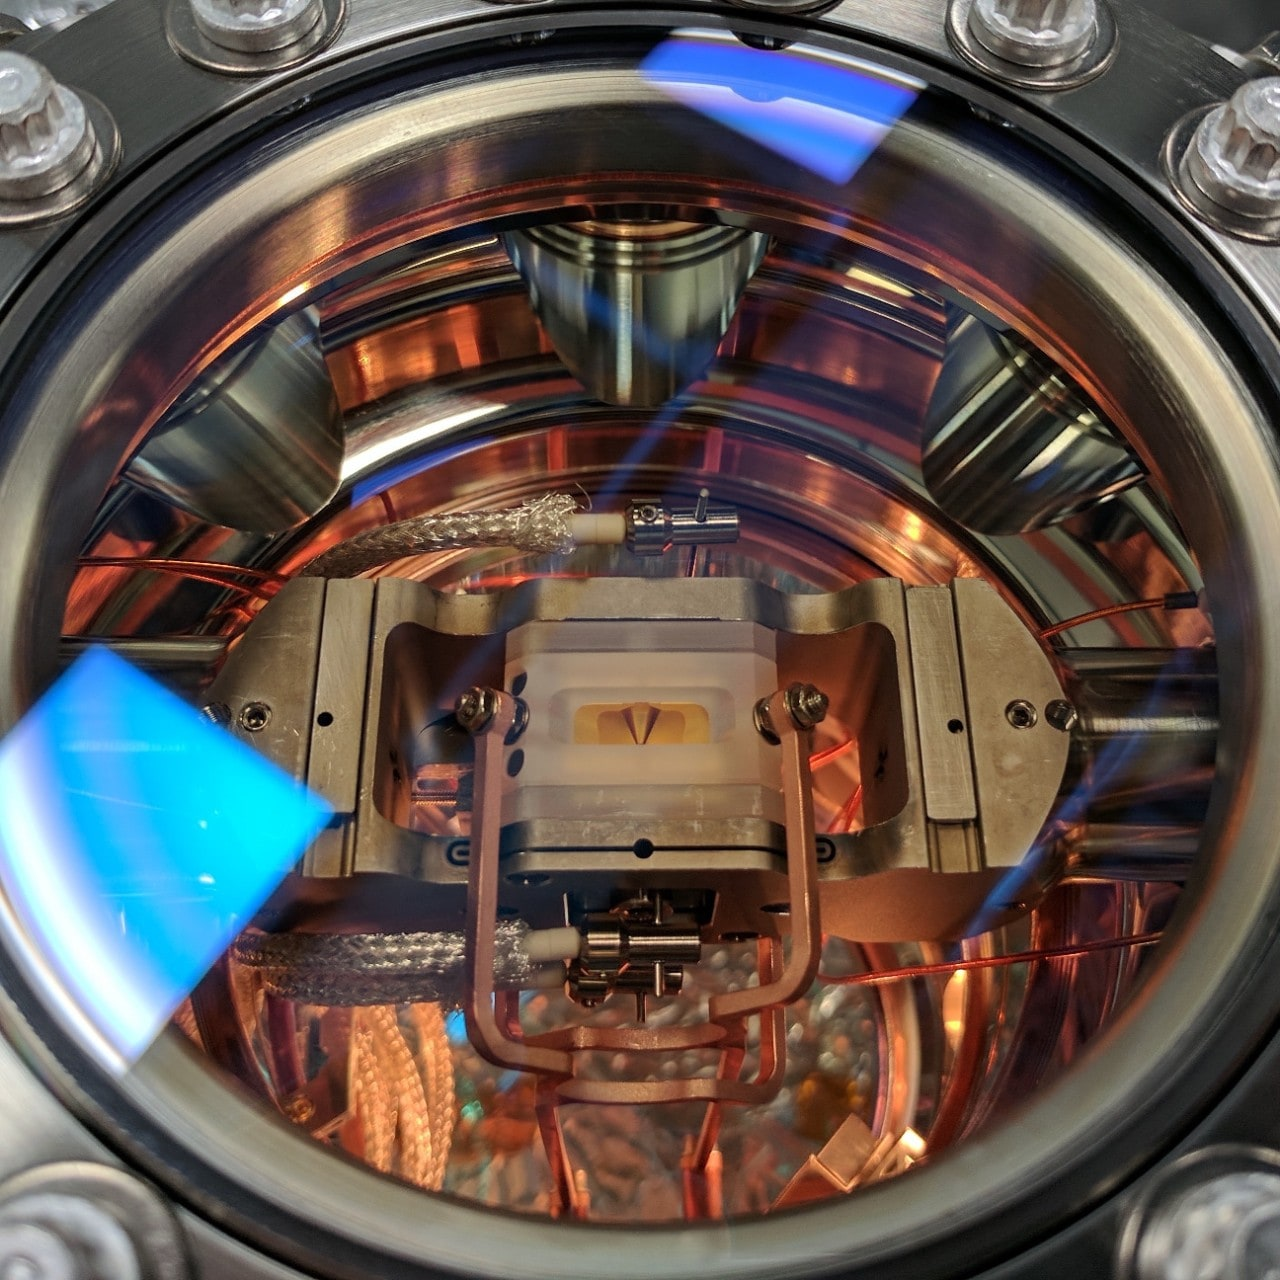 An ion trap at the University of Sydney's Quantum Control Laboratory. Ion traps are used to confine individual atoms for experiments in quantum control and quantum computing. Credit: Professor Michael Biercuk